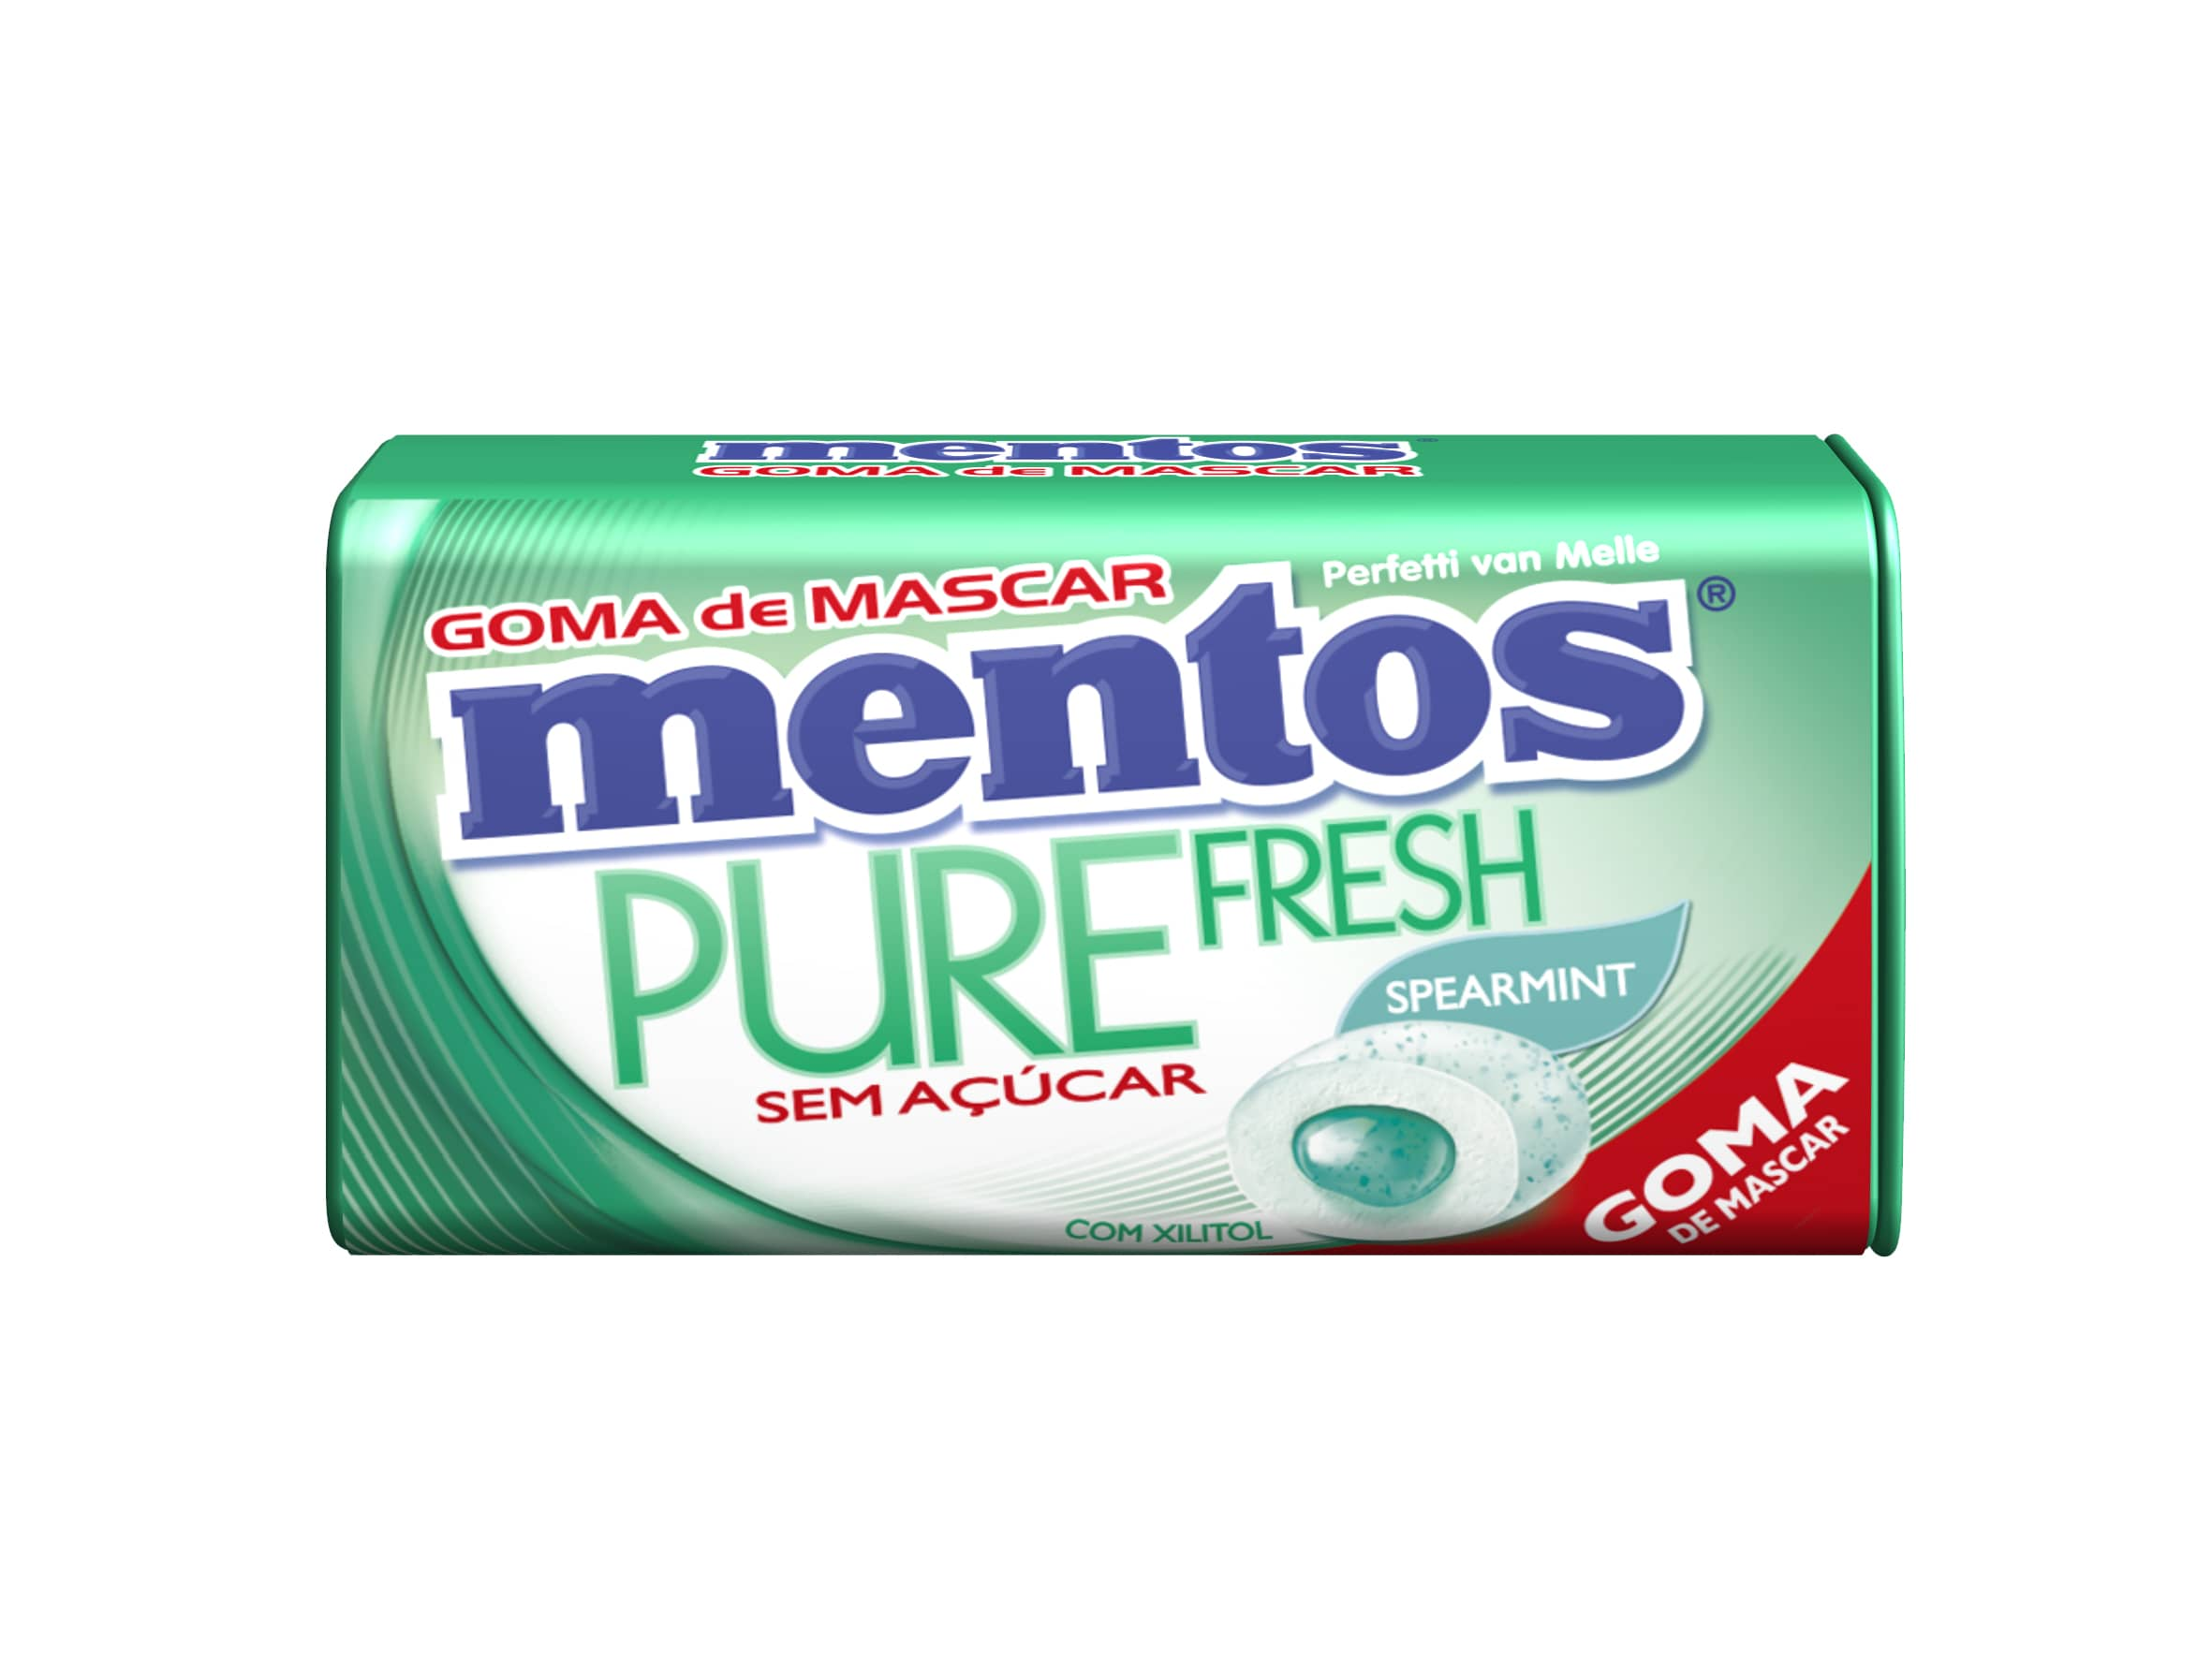 Mentos-Pure-Fresh-Spearmint_lata